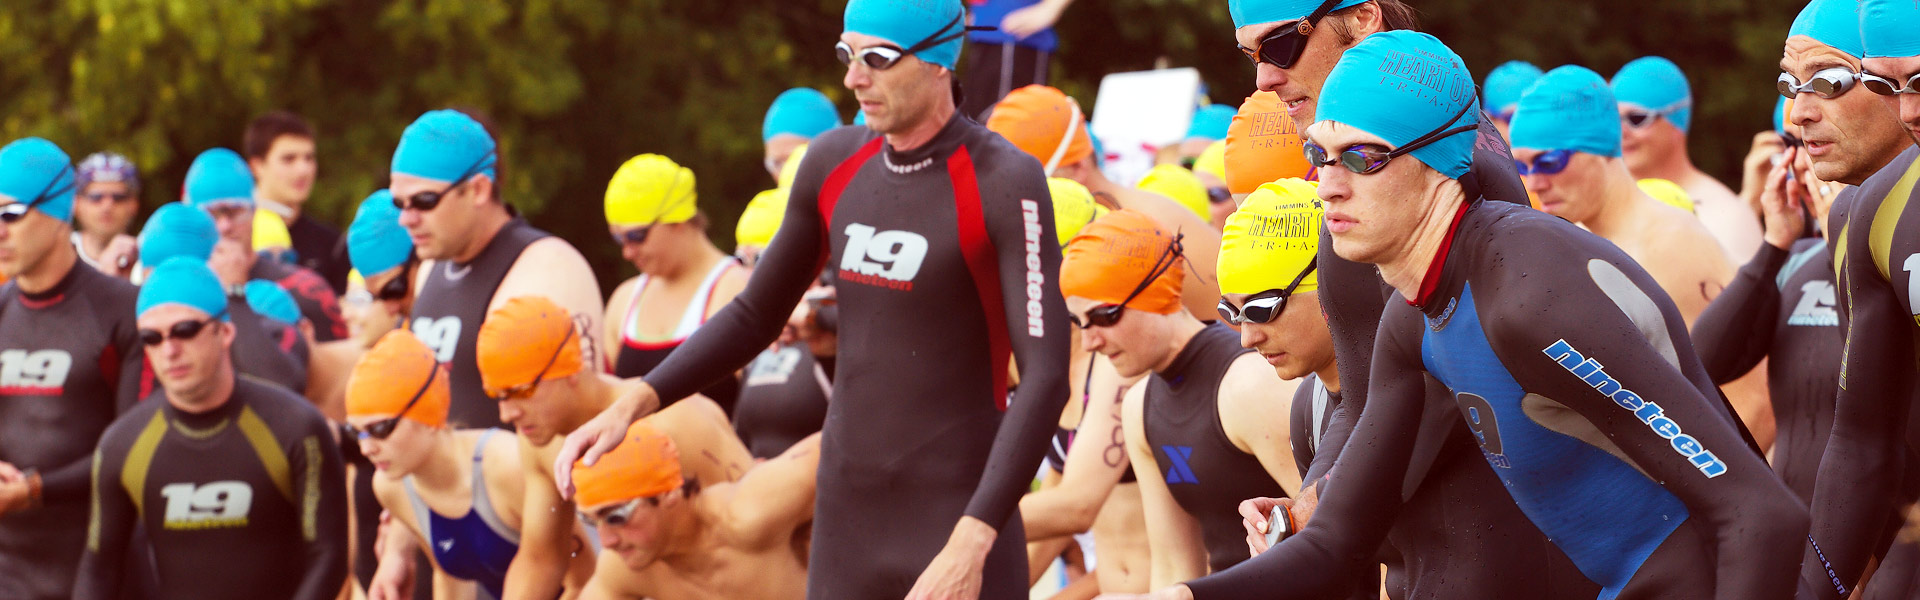 <h2>Heart of Gold Triathlon</h2> Swim, bike and run on Sunday July 12th, 2015 in the fastest growing sport in North America!